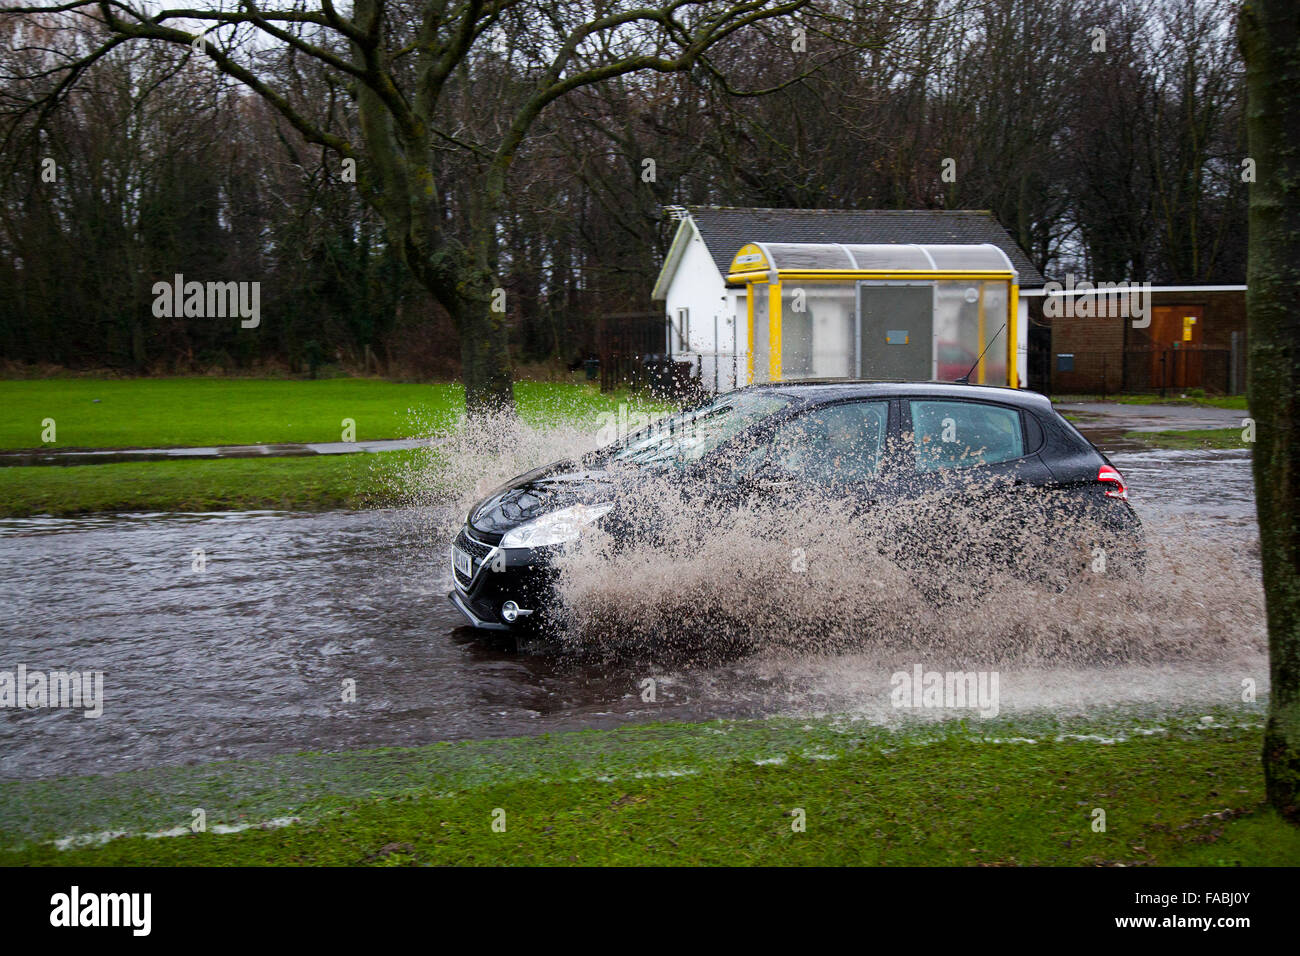 Southport, Merseyside, UK 26th December, 2015. UK Weather.  Southport Floods! For the first time in living memory - Stock Image